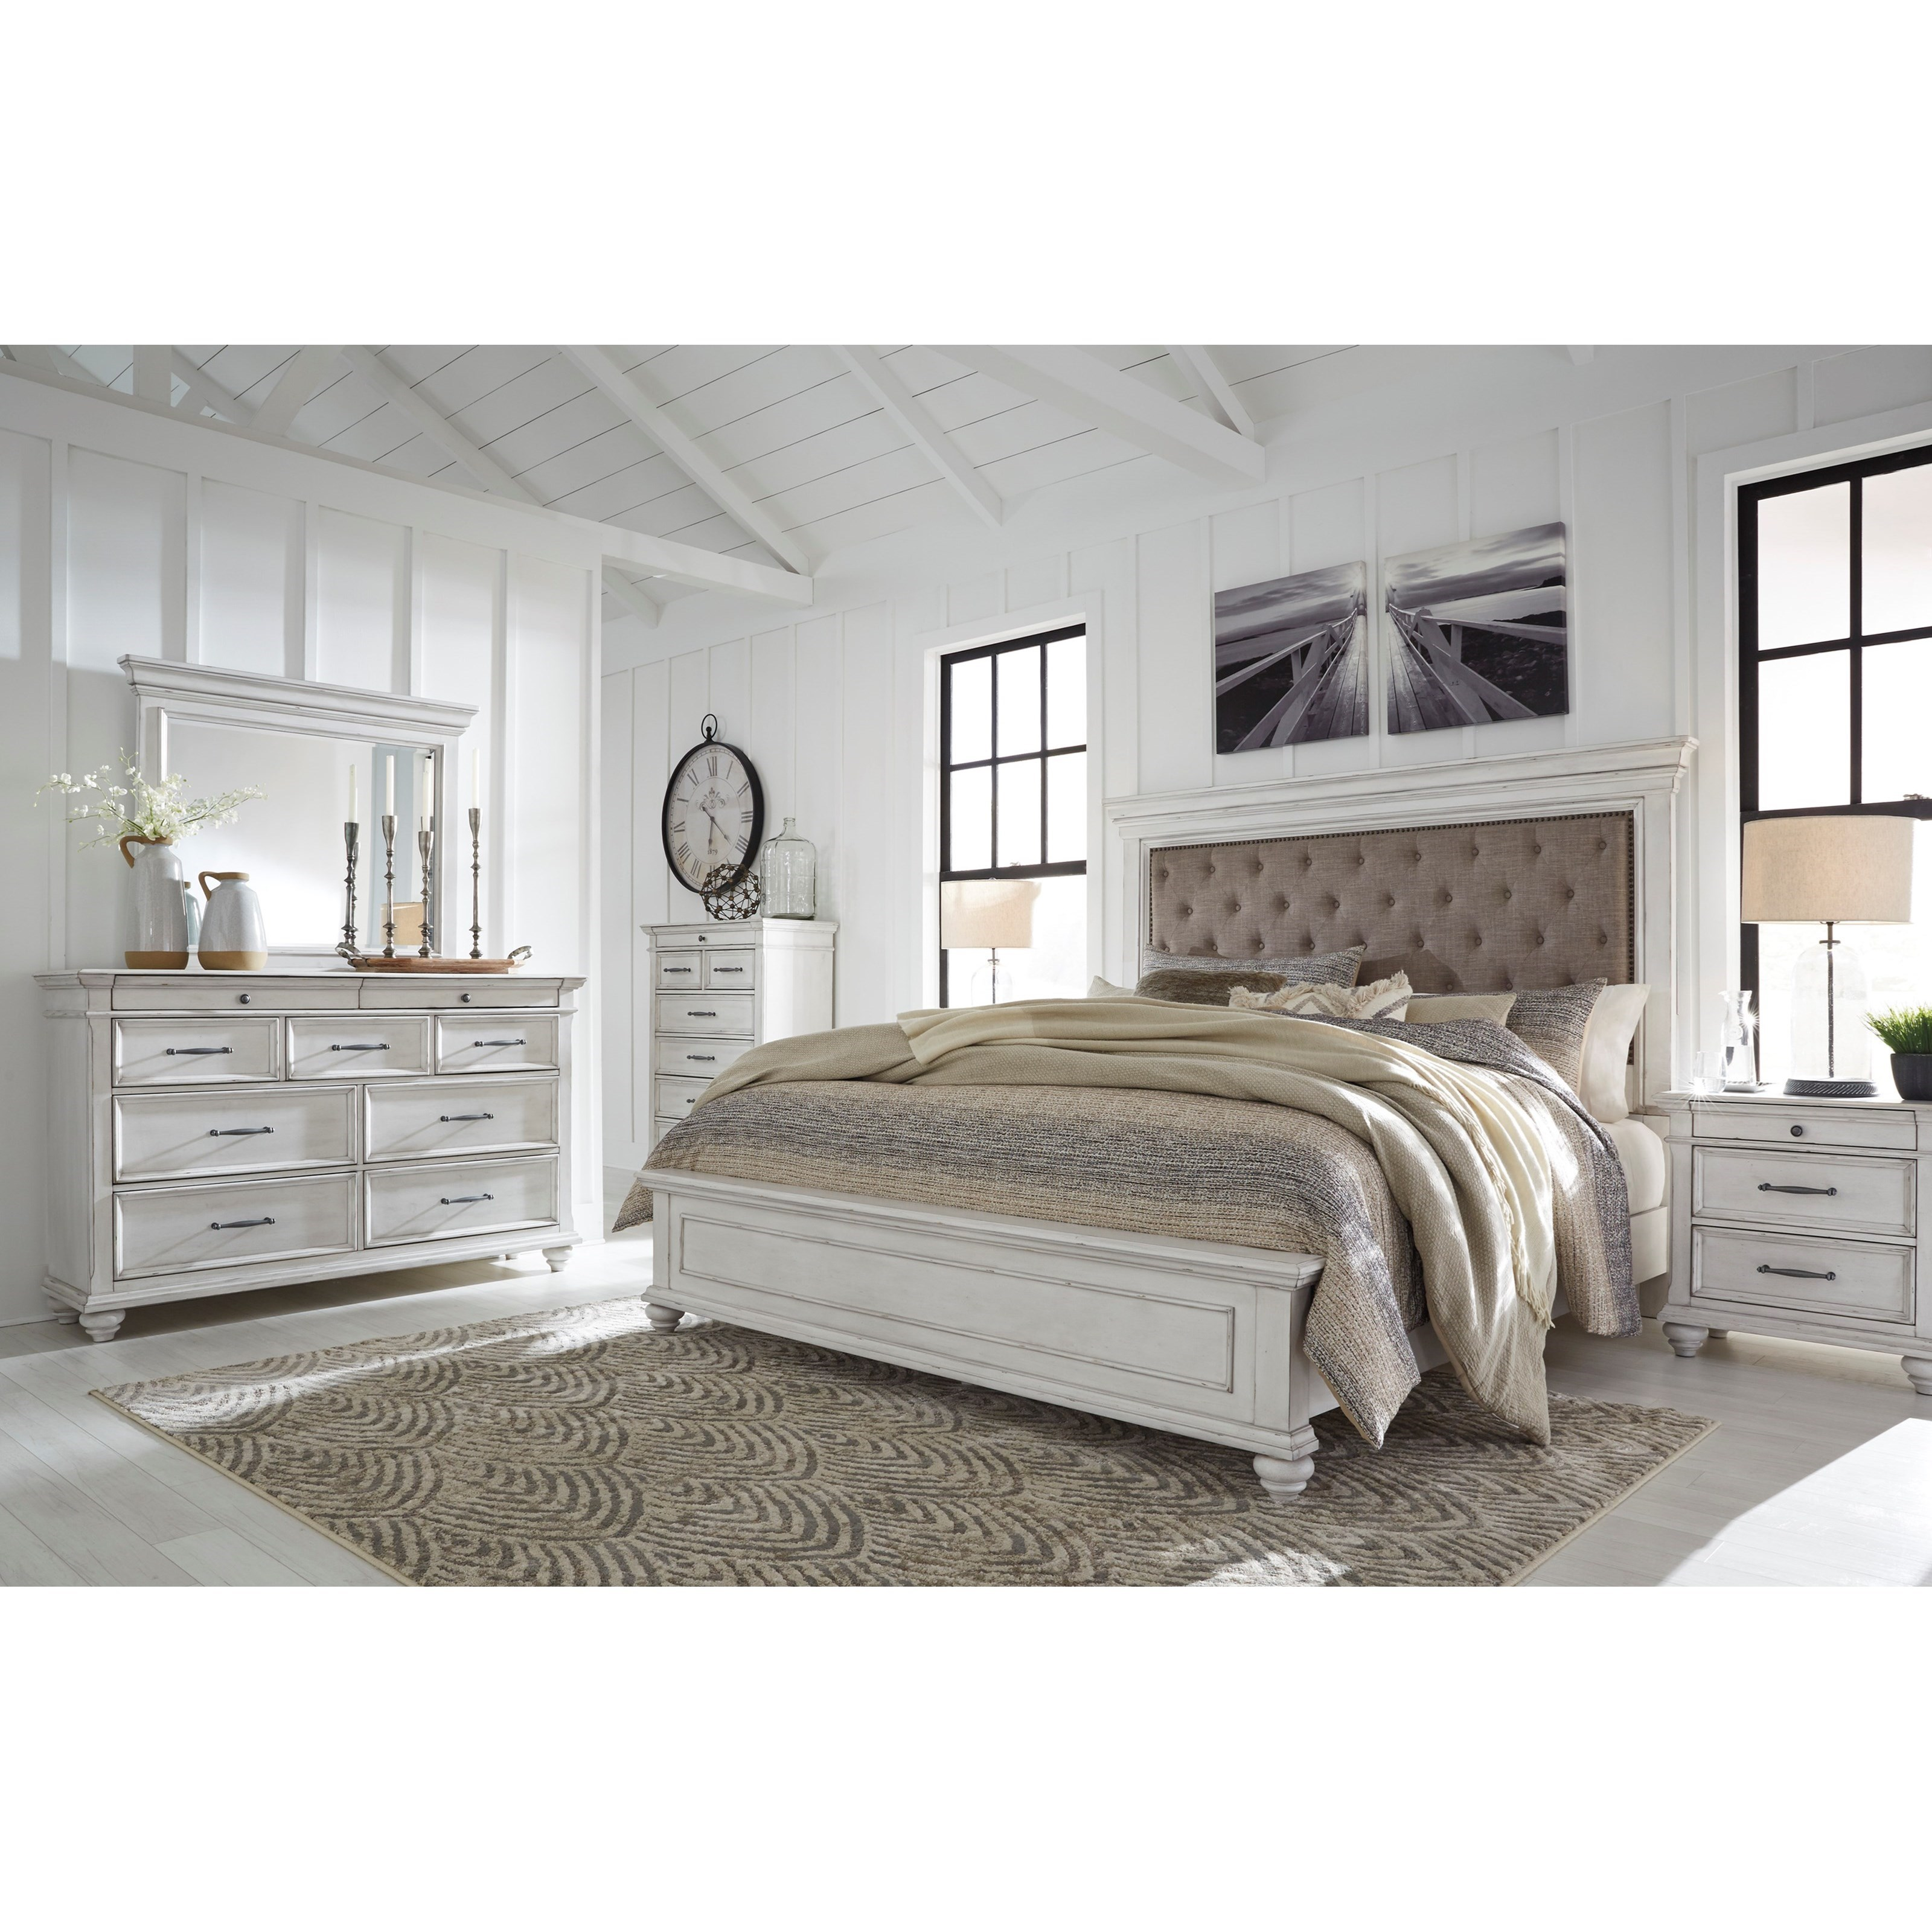 Kanwyn California King Bedroom Group by Benchcraft at Zak's Warehouse Clearance Center